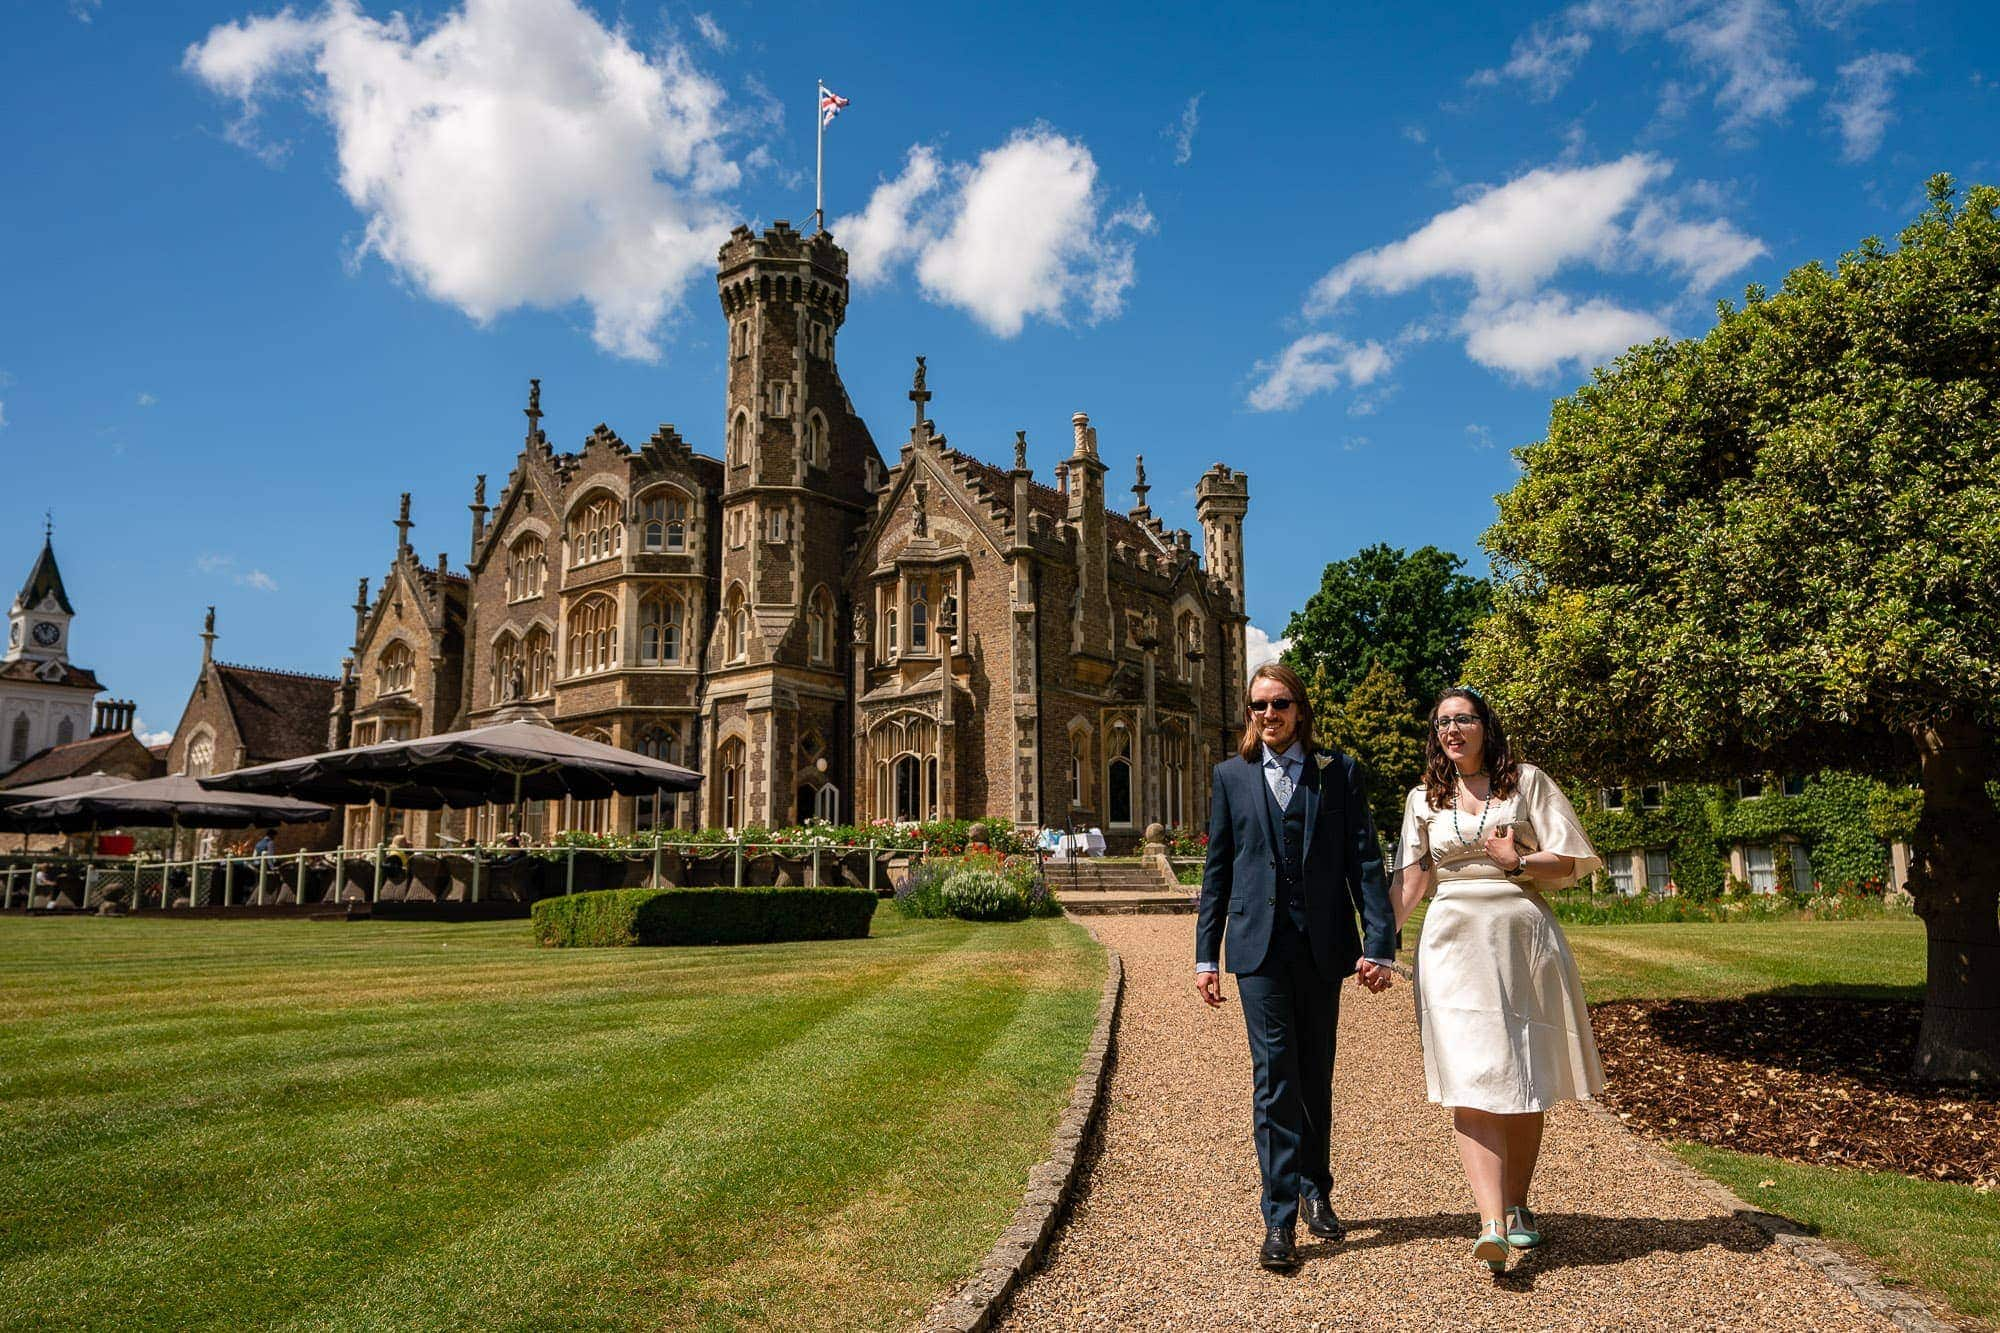 Bride & Groom, walking hand in hand in the gardens of Oakley Court, in Windsor. Hotel in background, blue sky white clouds.